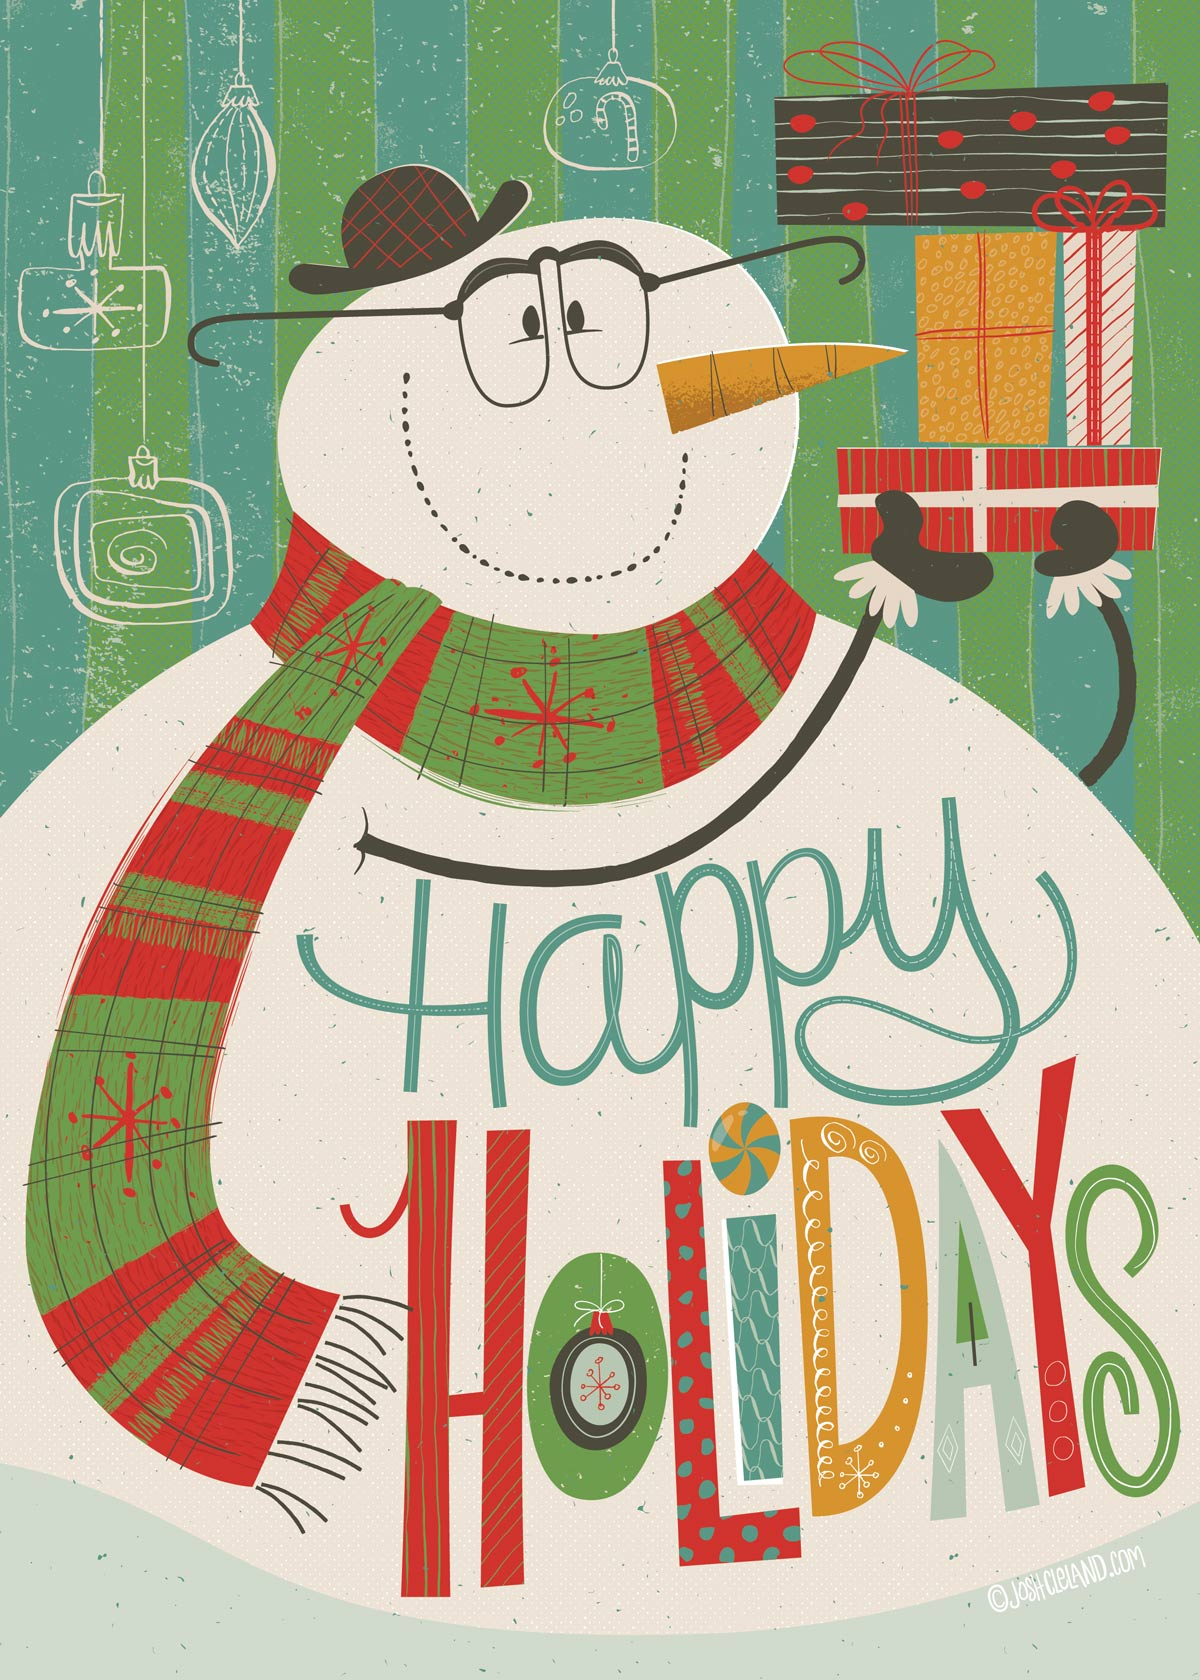 Christmas snowman holiday card by Josh Cleland